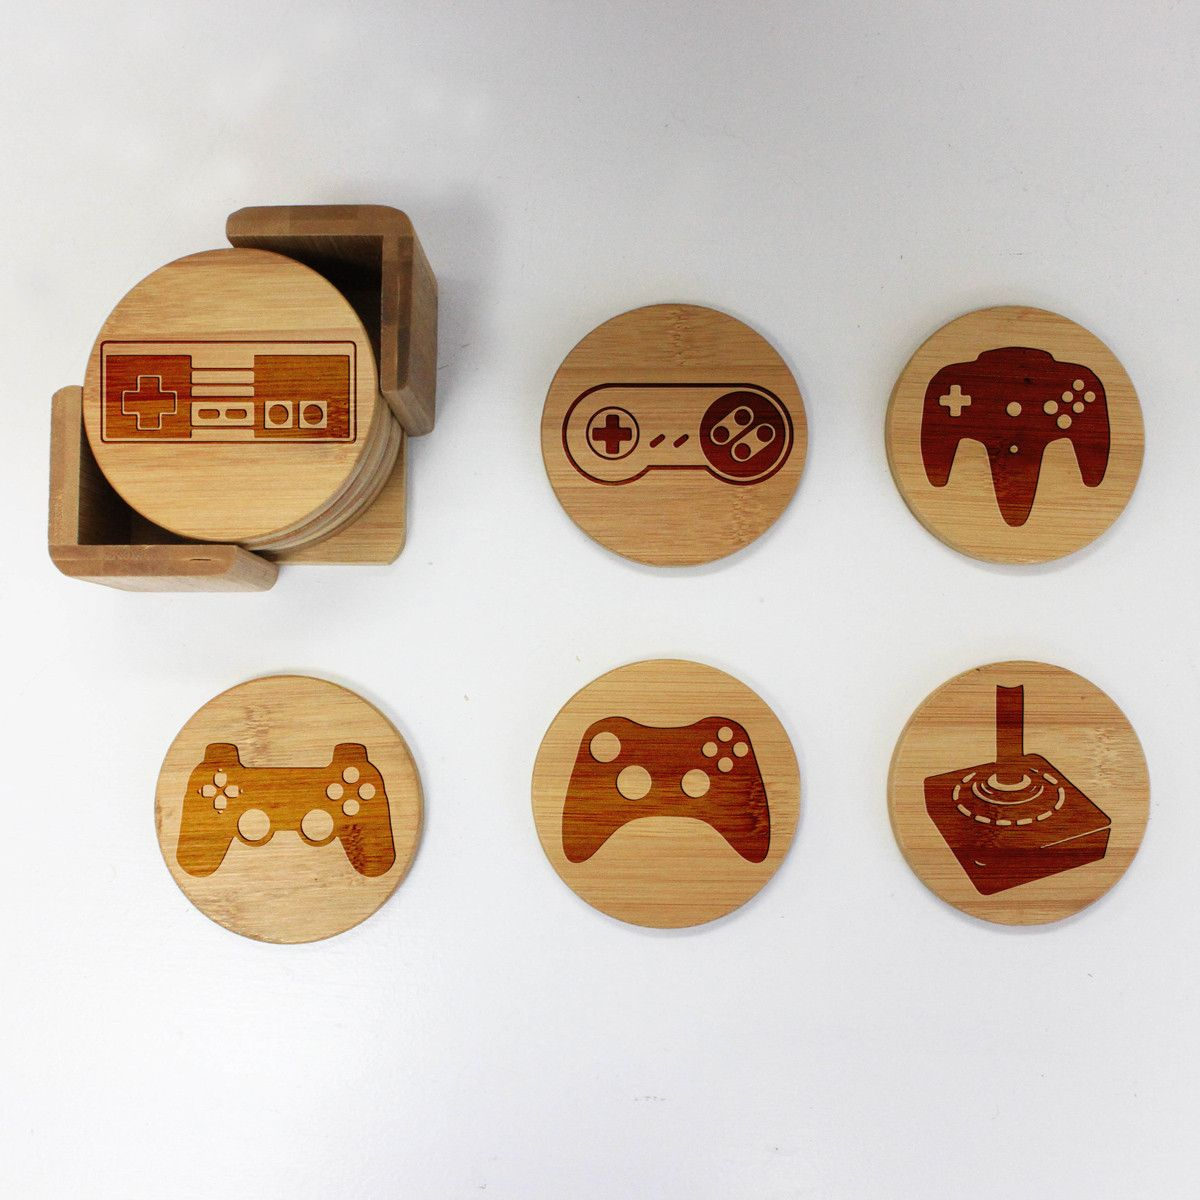 Bamboo Sala Set Bulacan Engraved Bamboo Coaster Set Quotvideo Game Controls Quot Ideas